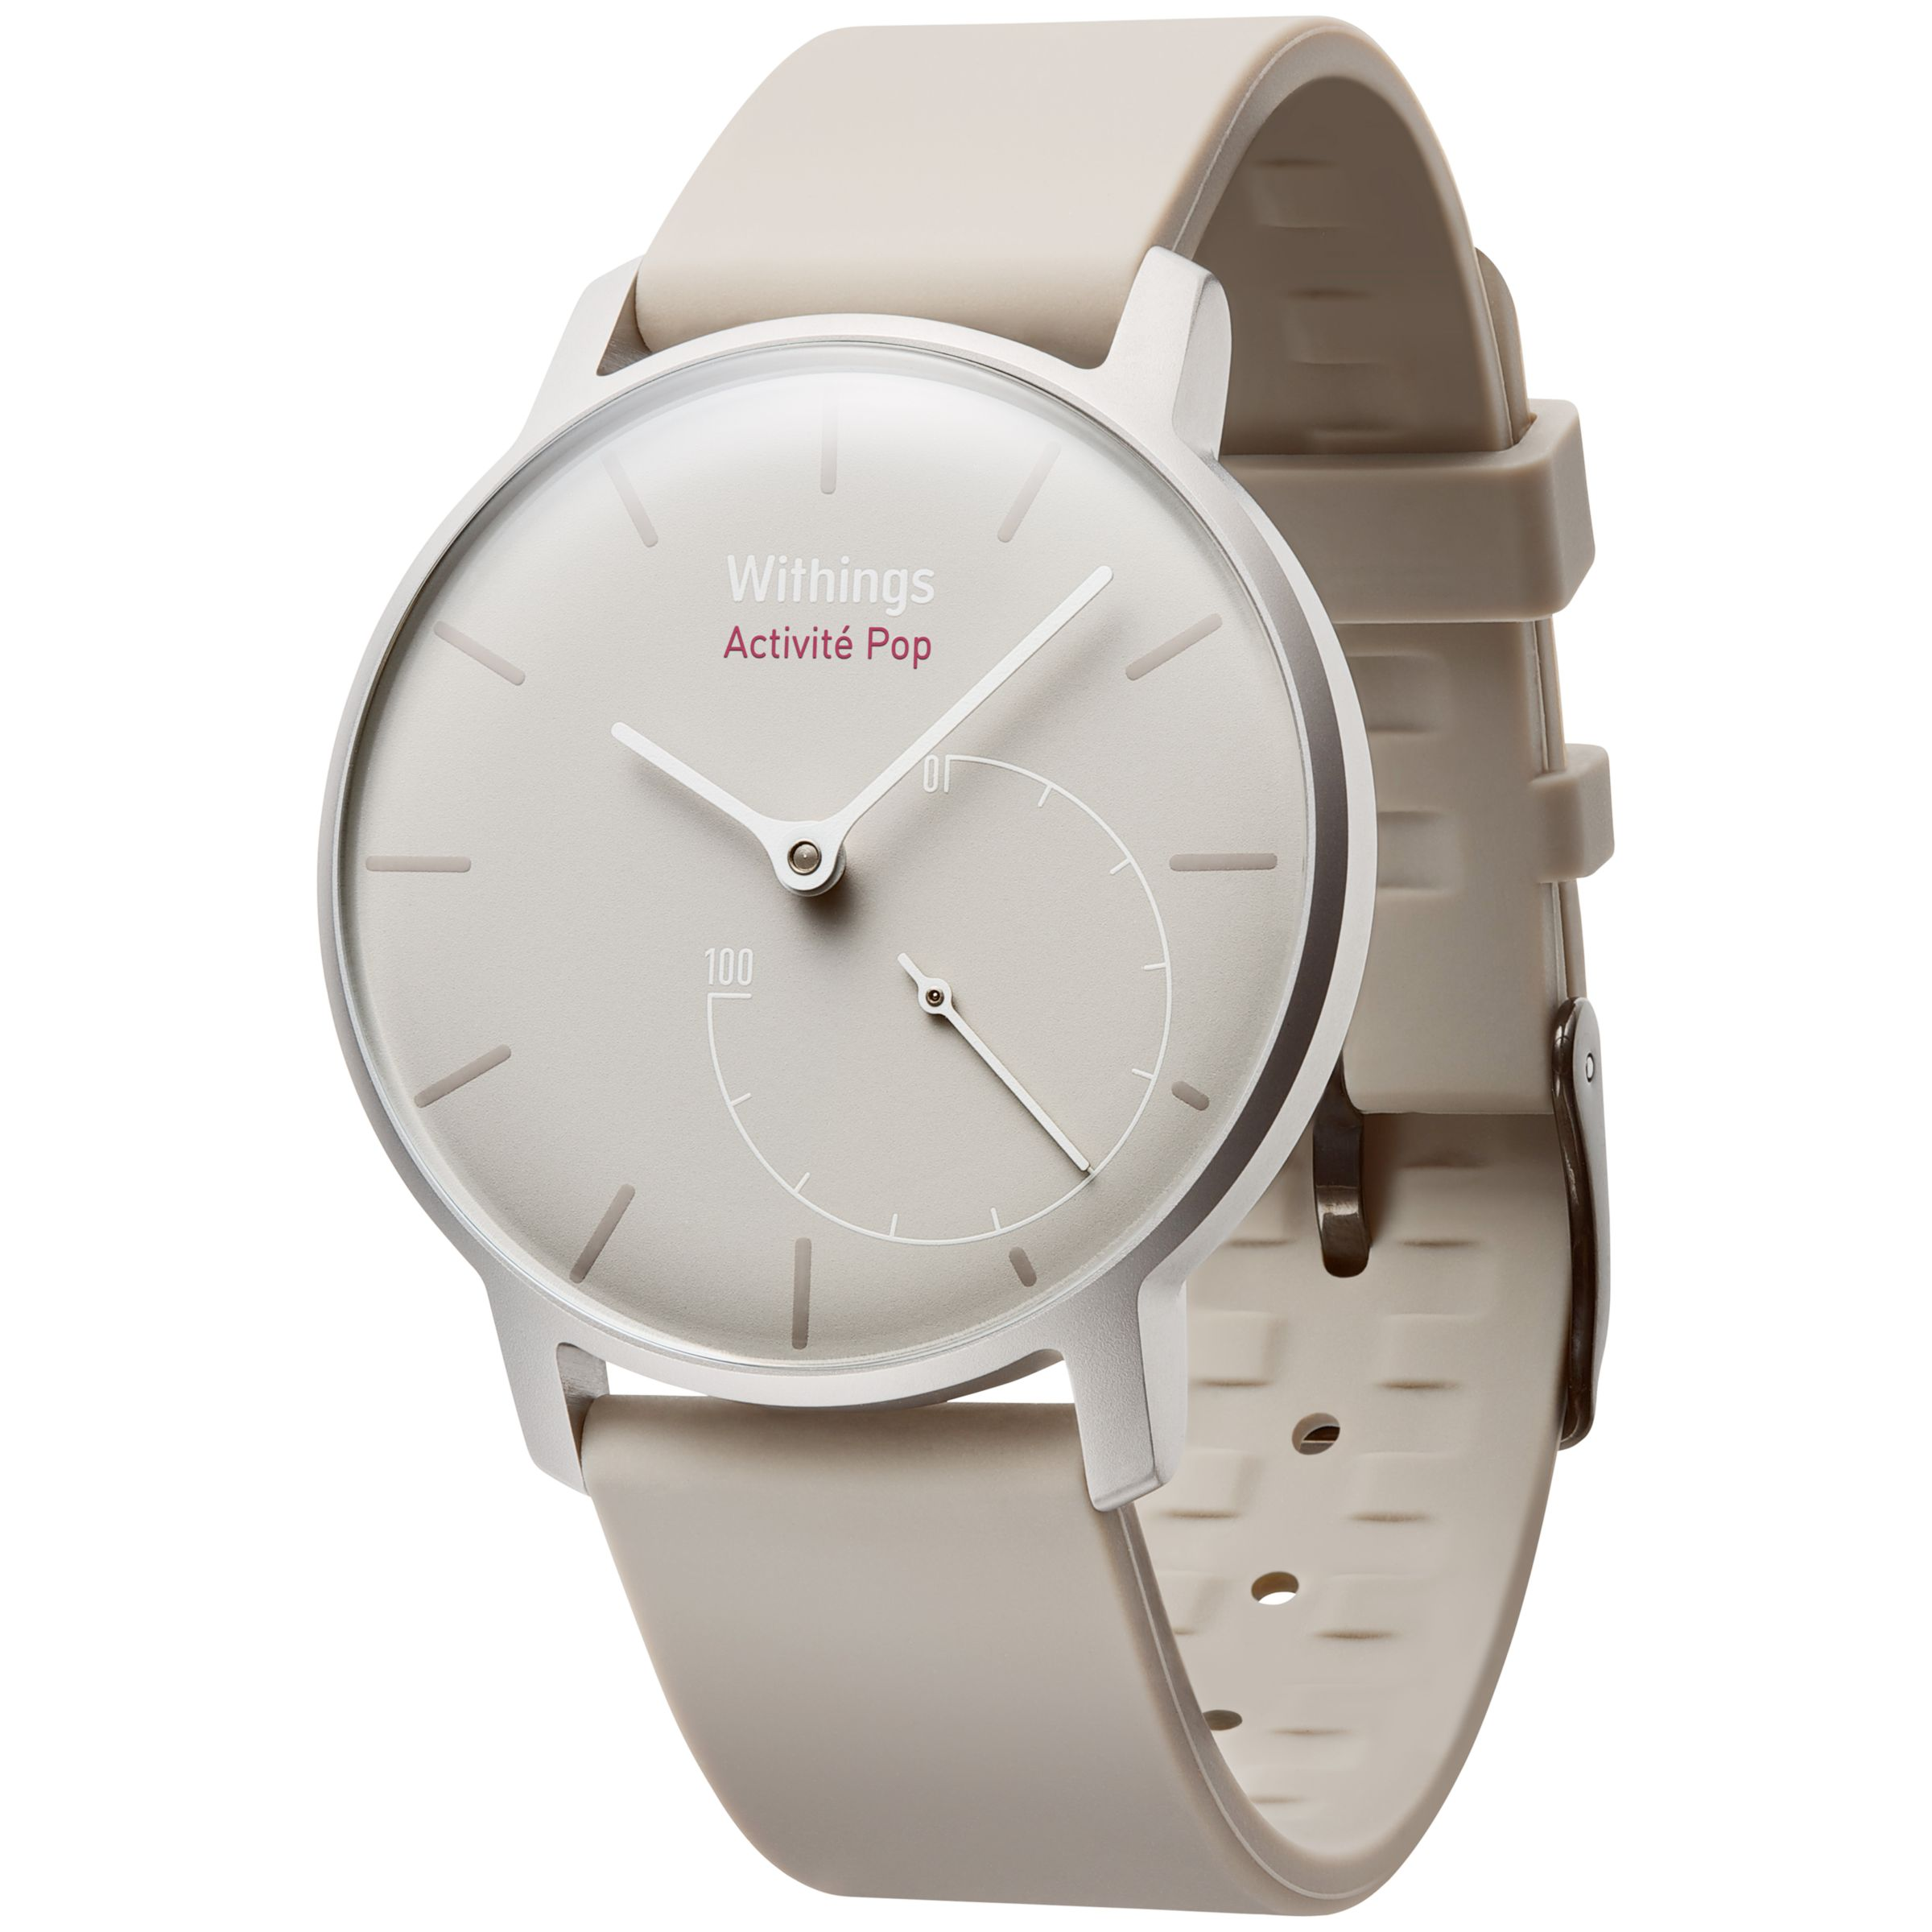 Withings Withings Activité Pop Activity & Sleep Tracking Watch